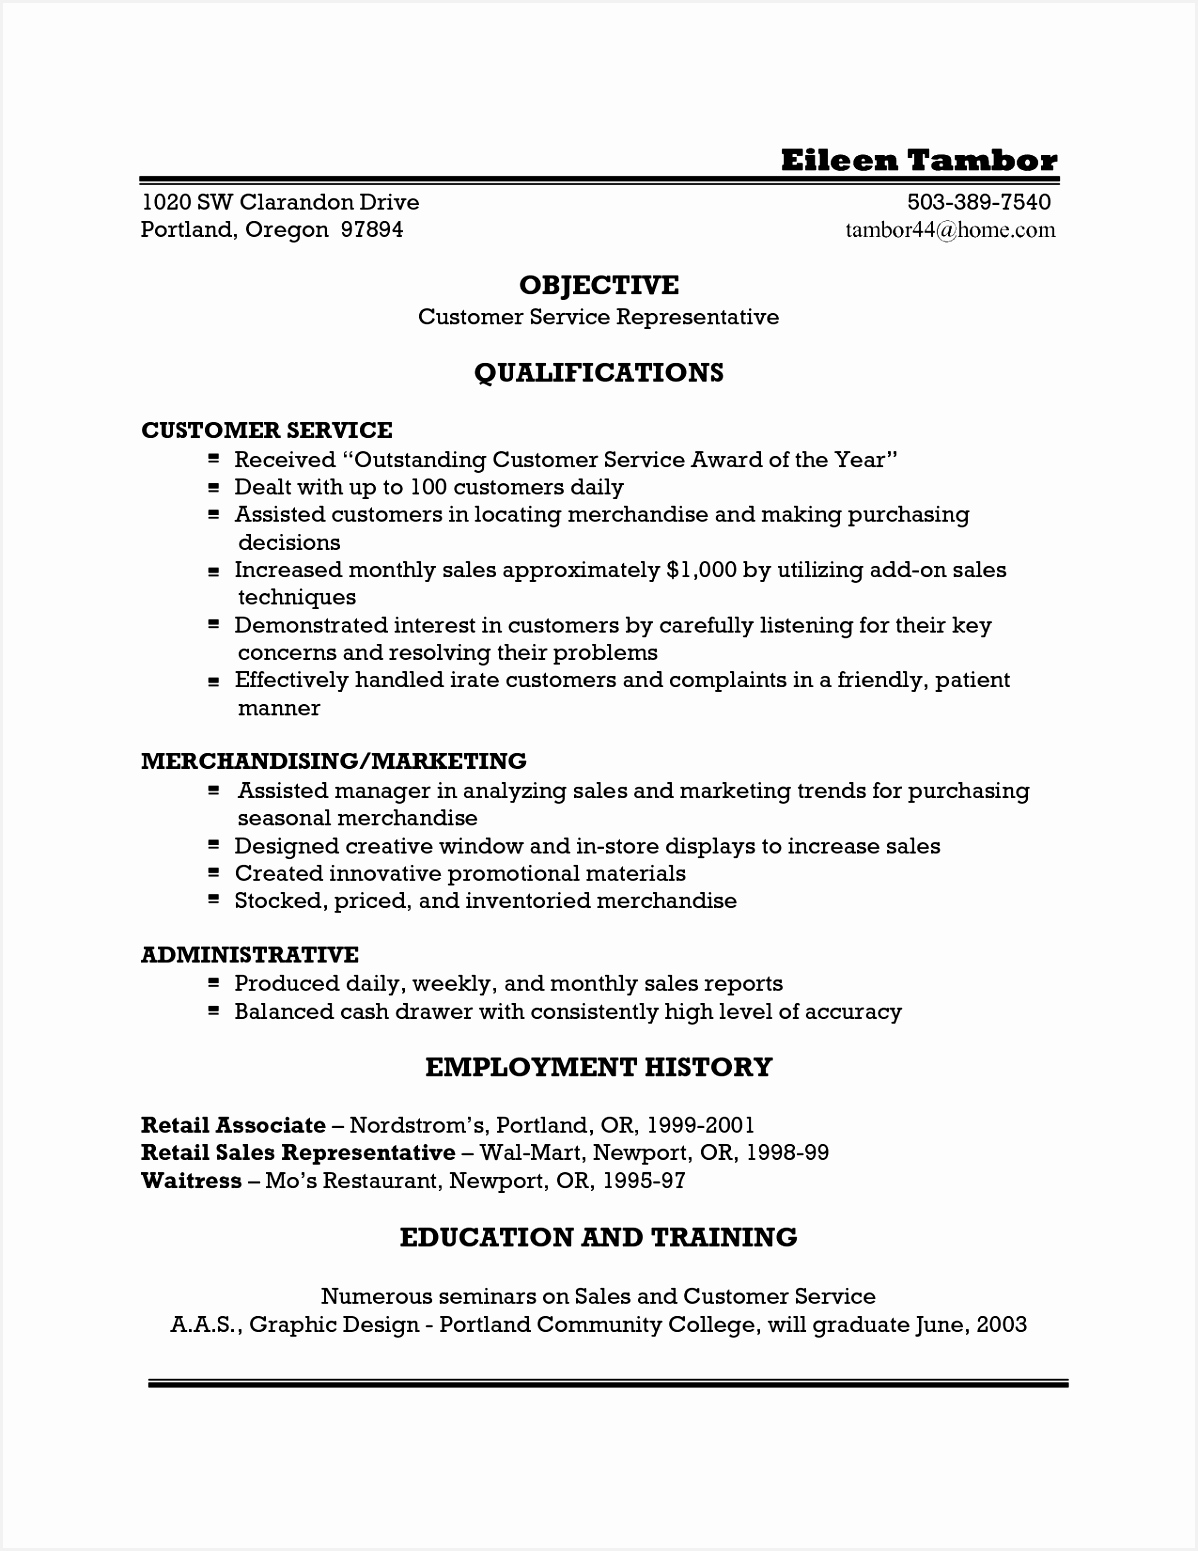 Resume for Restaurant Waitress Z0jgf Unique Waitress Resume Example Template for Doc Server Samples Jpc Job15511198